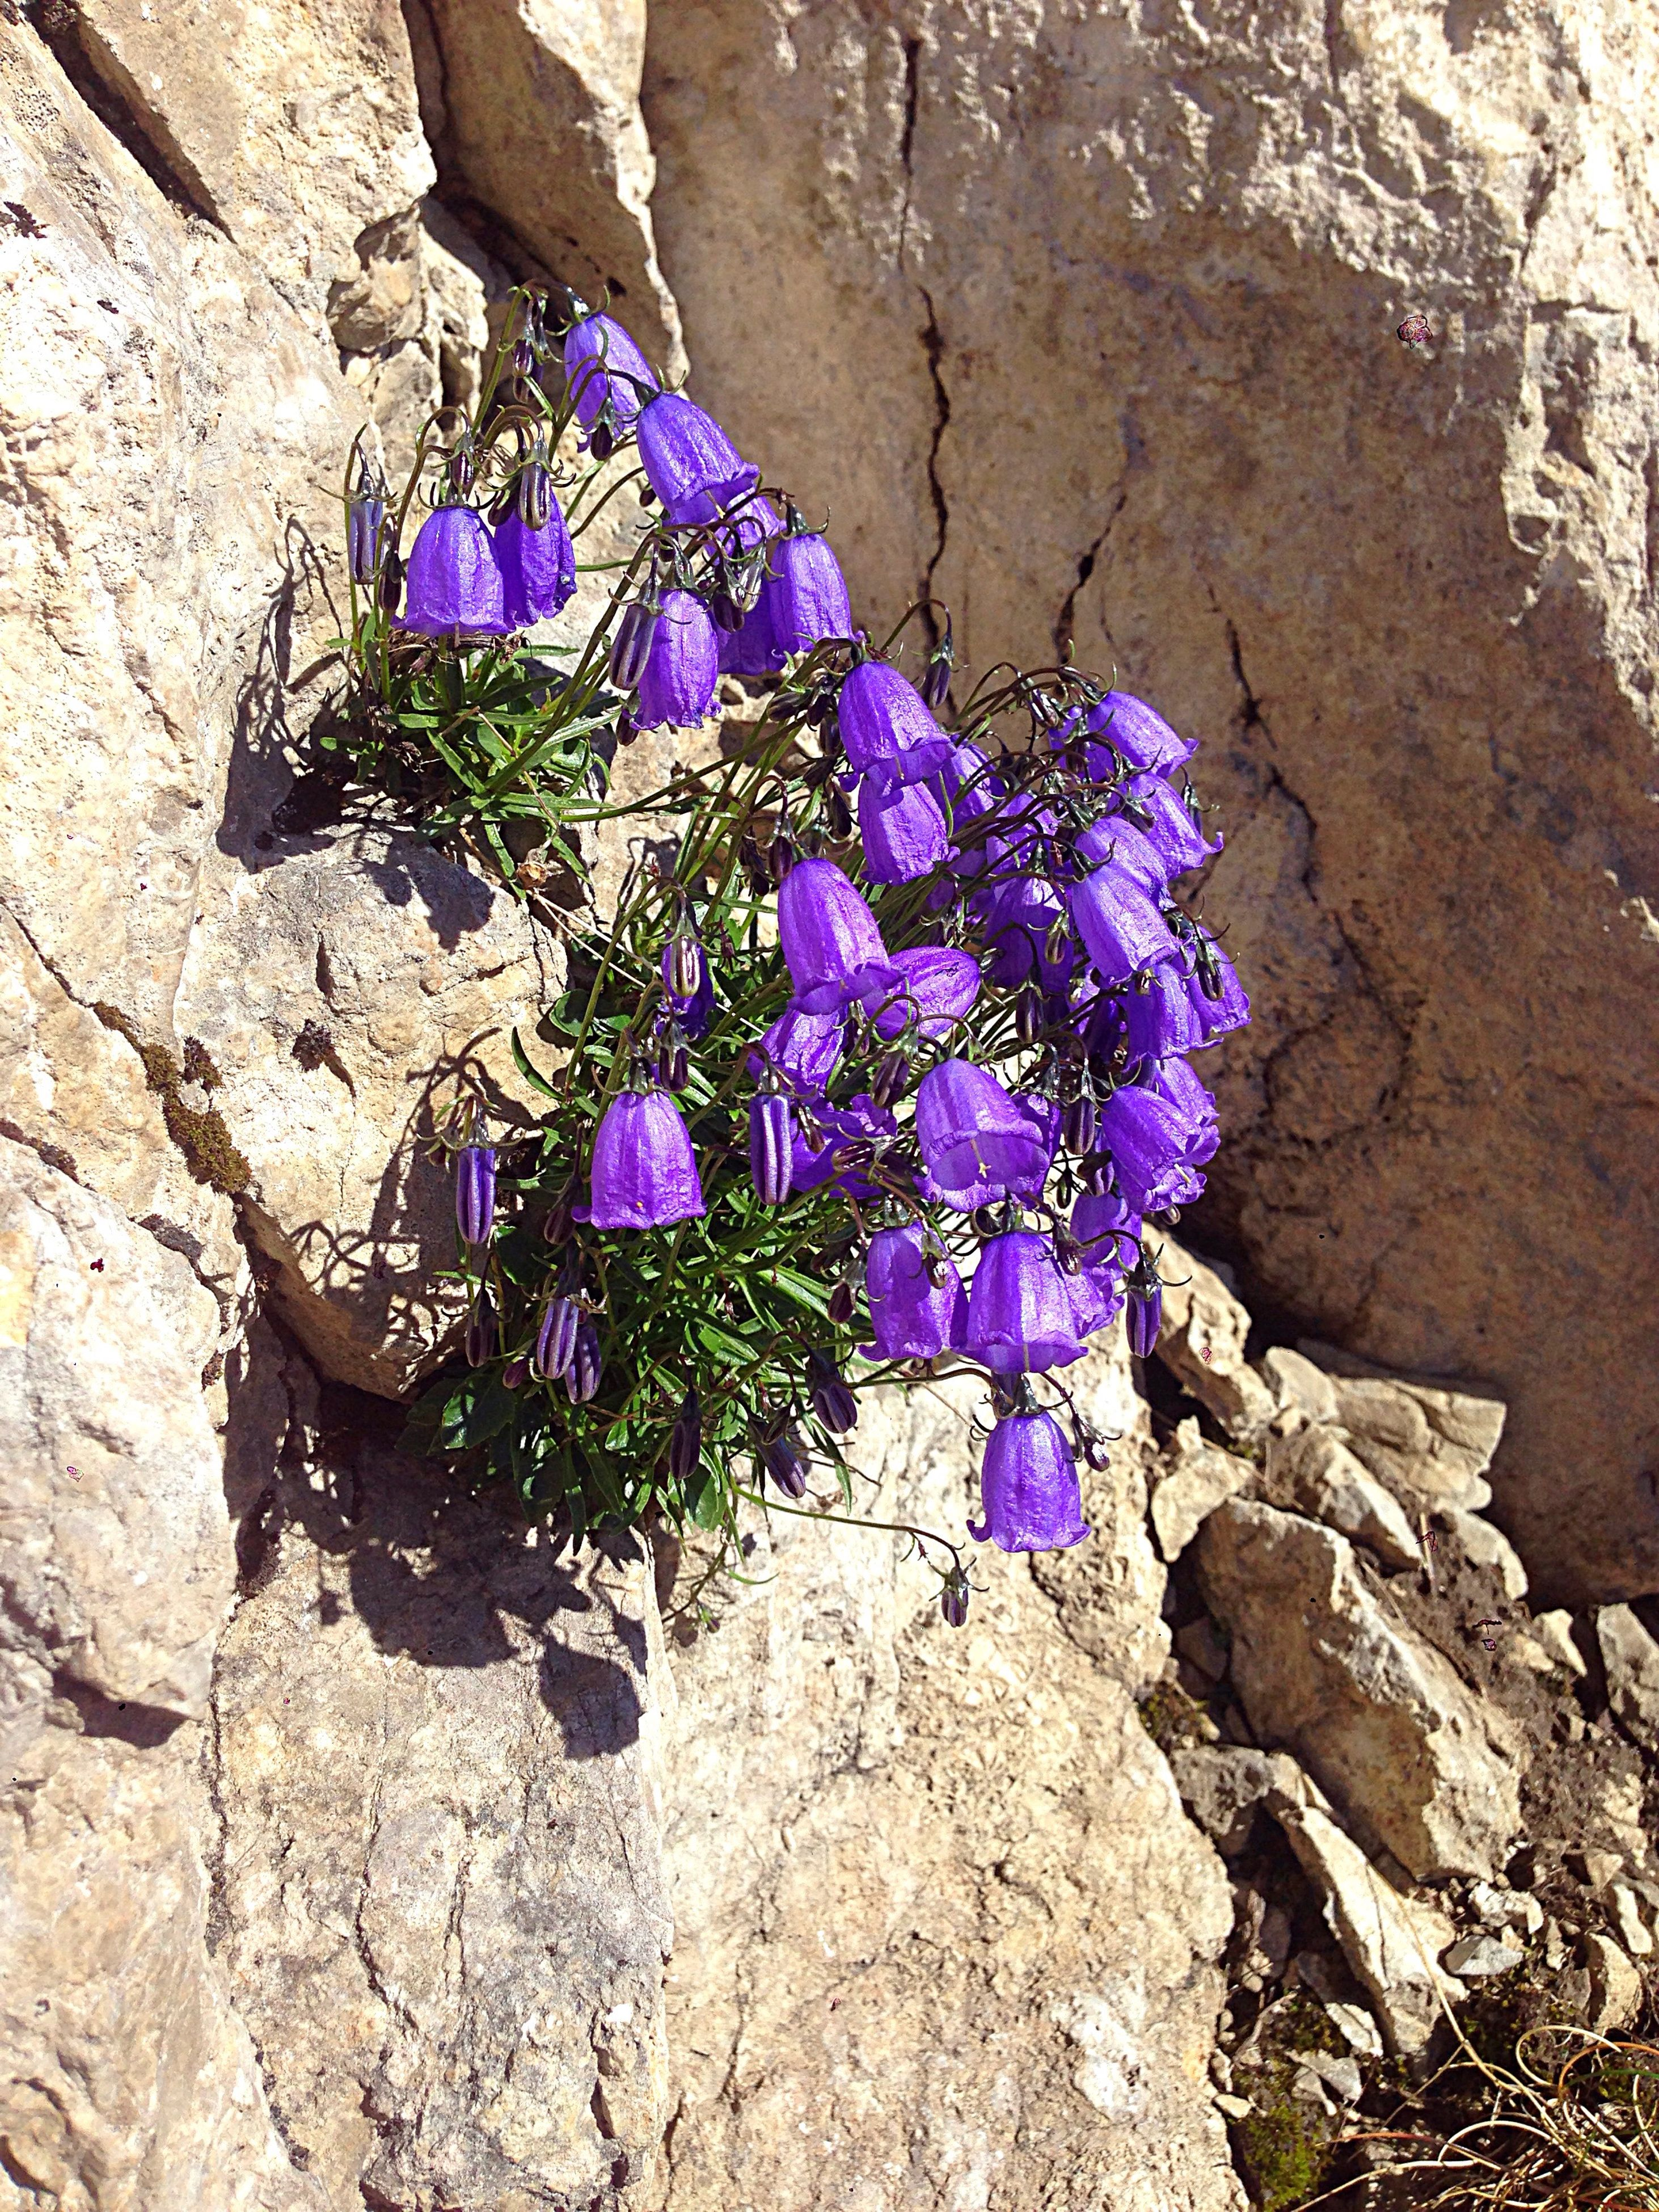 flower, rock - object, purple, day, nature, sunlight, outdoors, beauty in nature, growth, plant, no people, high angle view, fragility, close-up, freshness, flower head, crocus